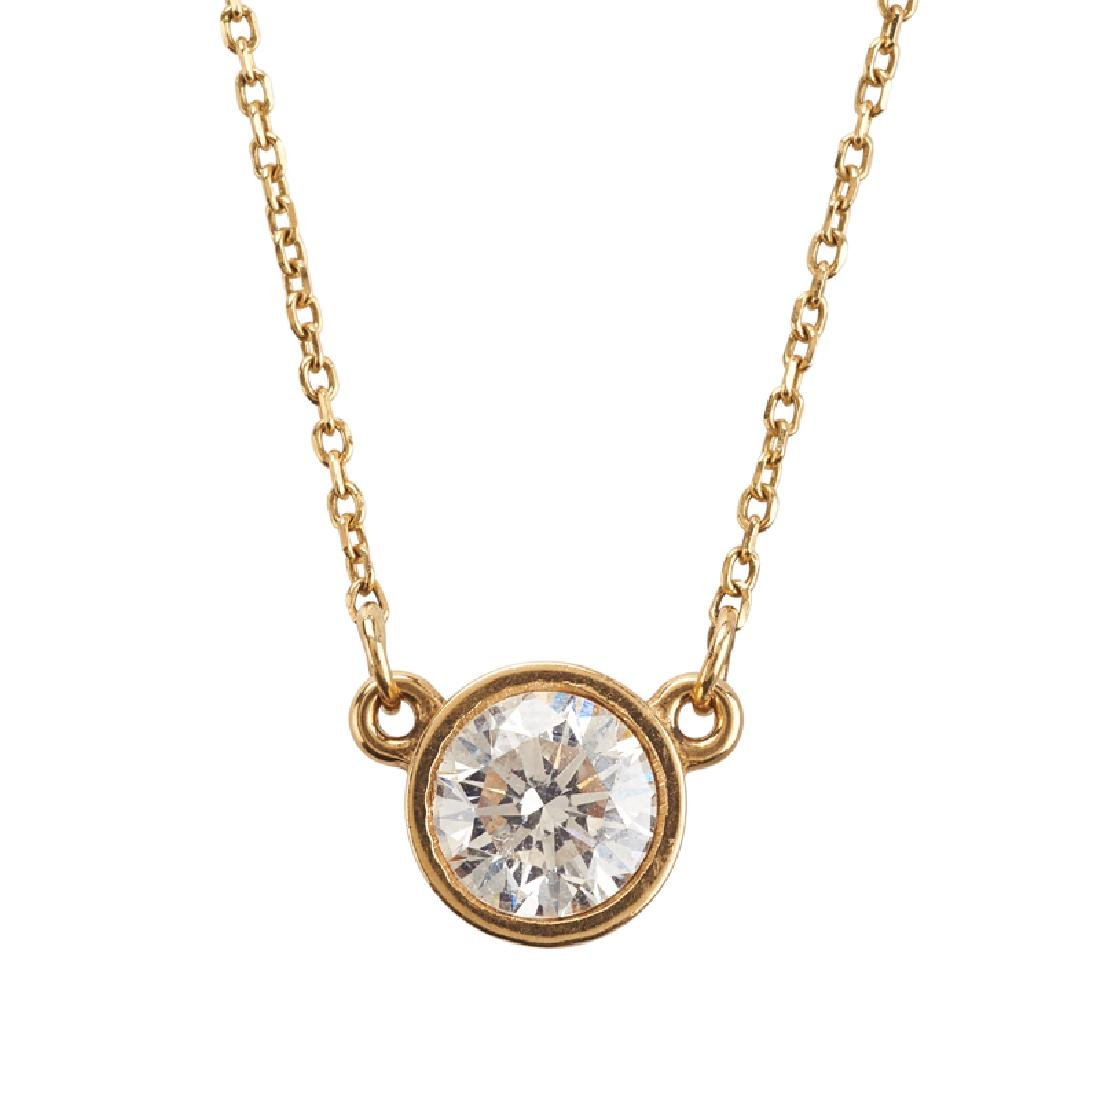 DIAMOND SOLITAIRE & YELLOW GOLD PENDANT NECKLACE